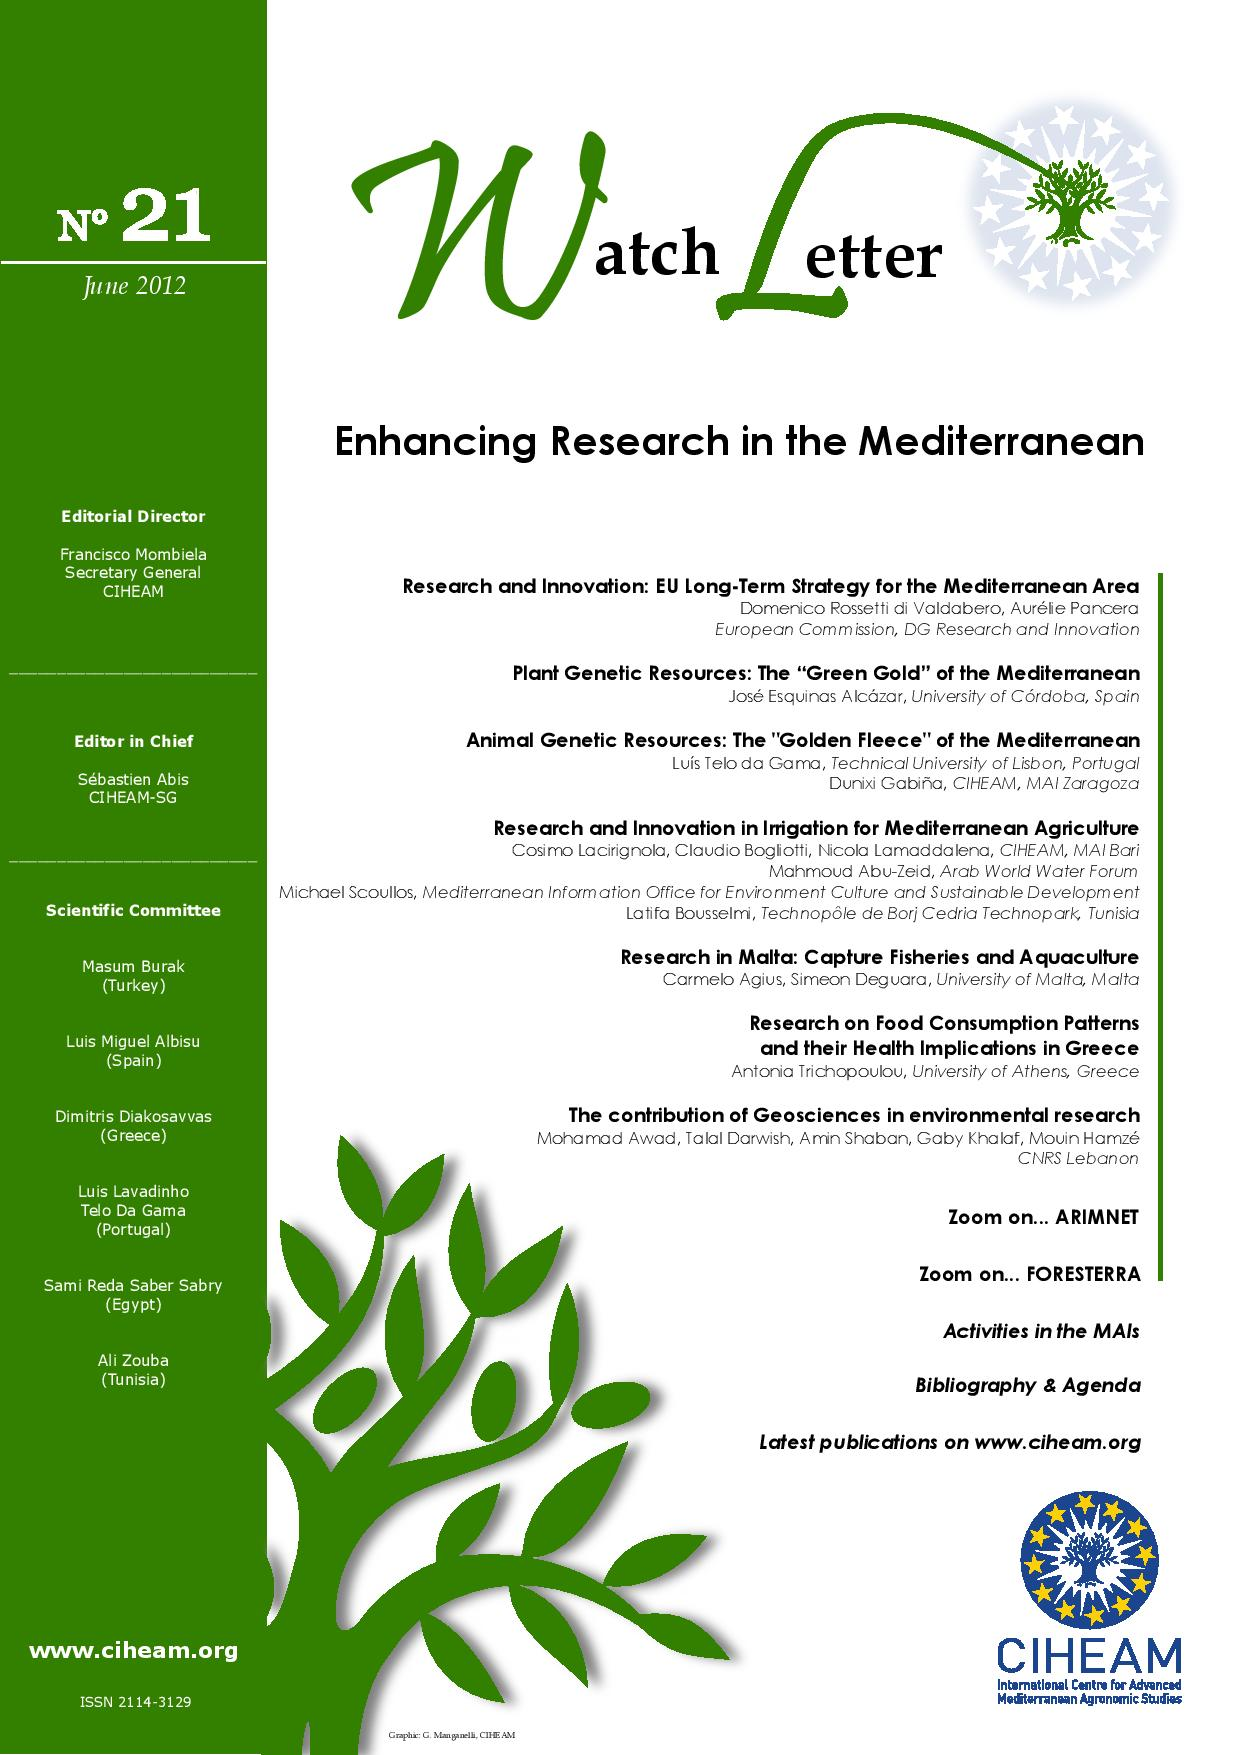 WL 21 Enhancing Research in the Mediterranean